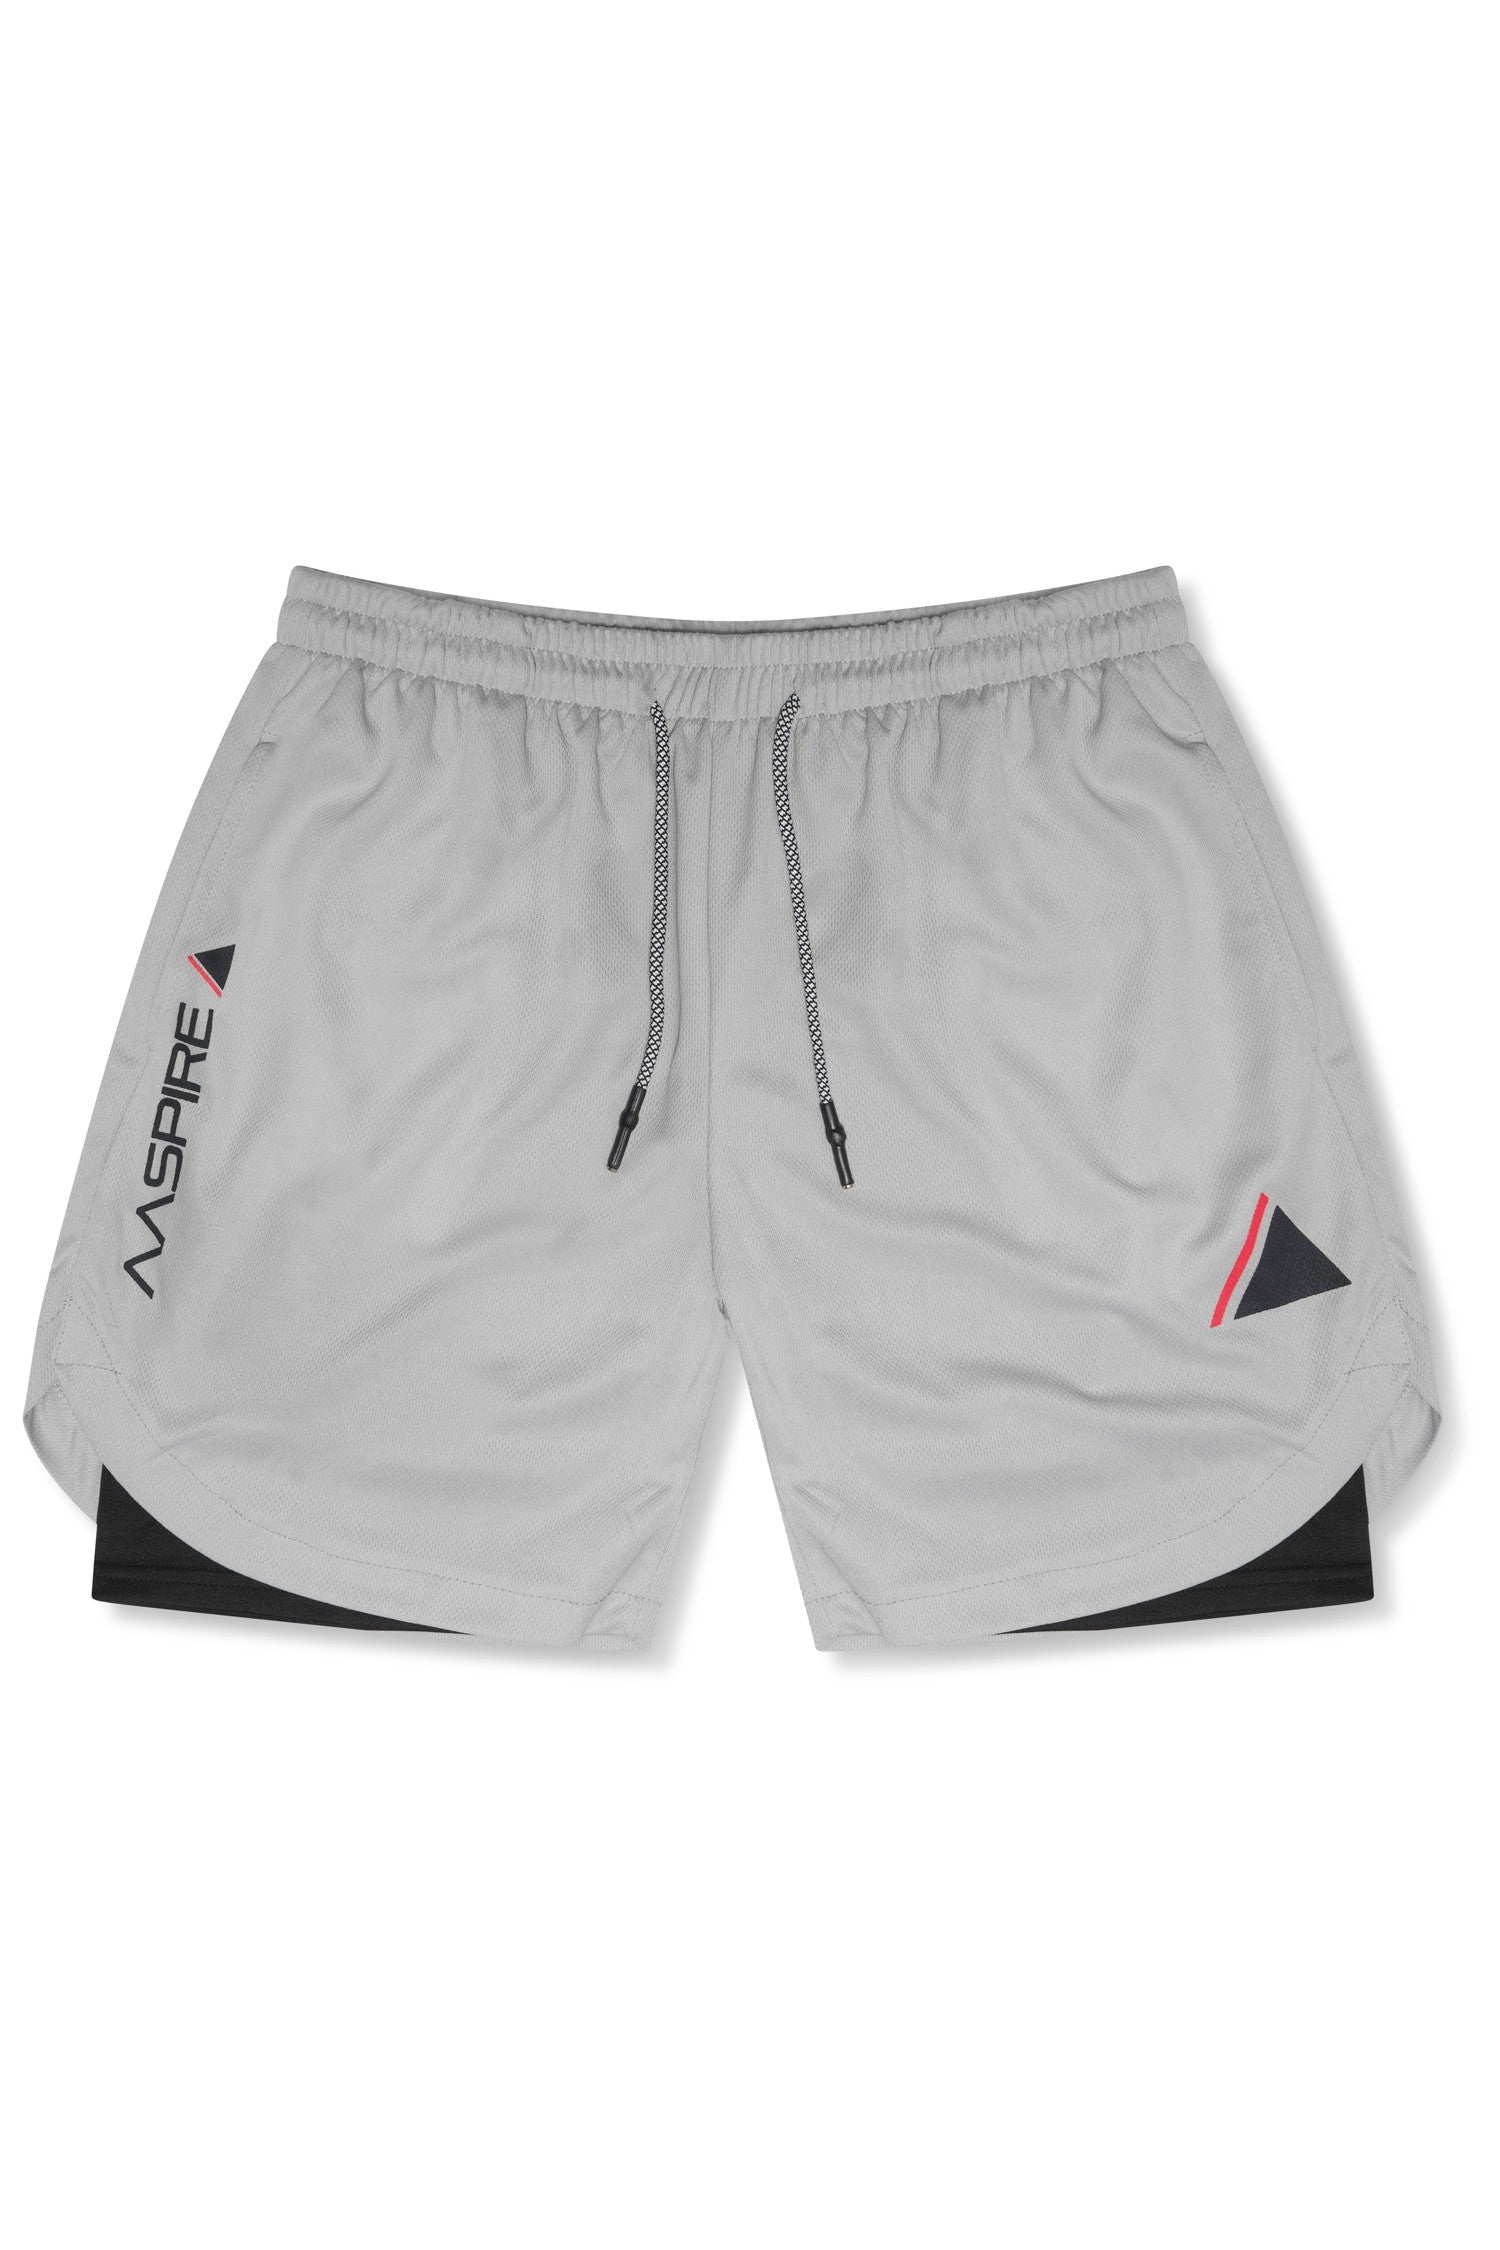 AASPIRE FLEX FIT SHORTS (GREY)